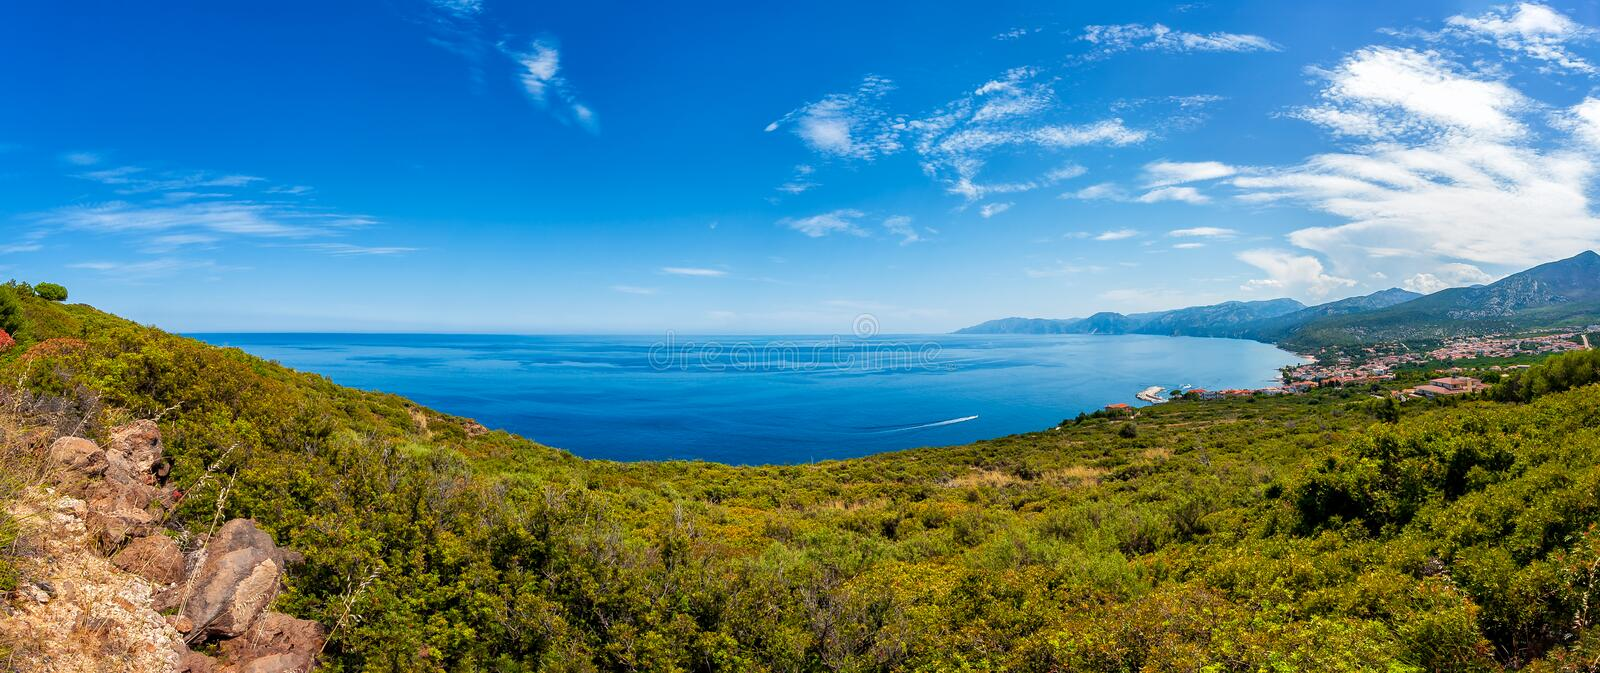 Overview of the coast of Cala Gonone, Sardinia stock photo